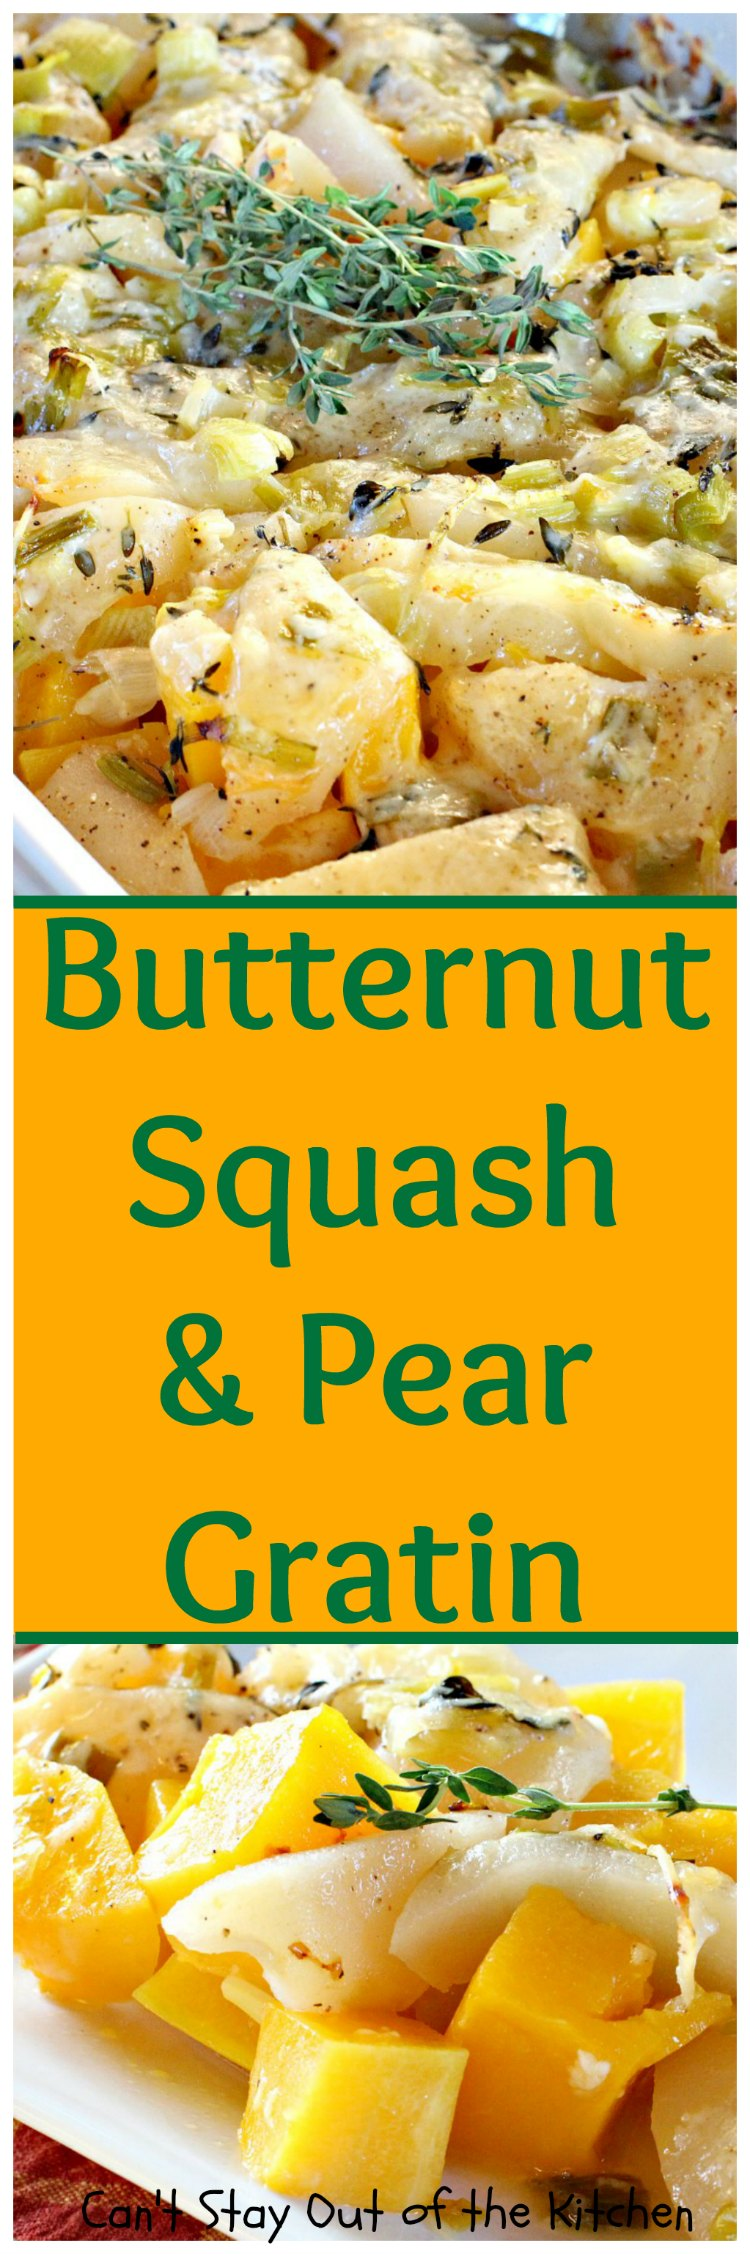 Butternut Squash and Pear Gratin | Can't Stay Out of the Kitchen ...